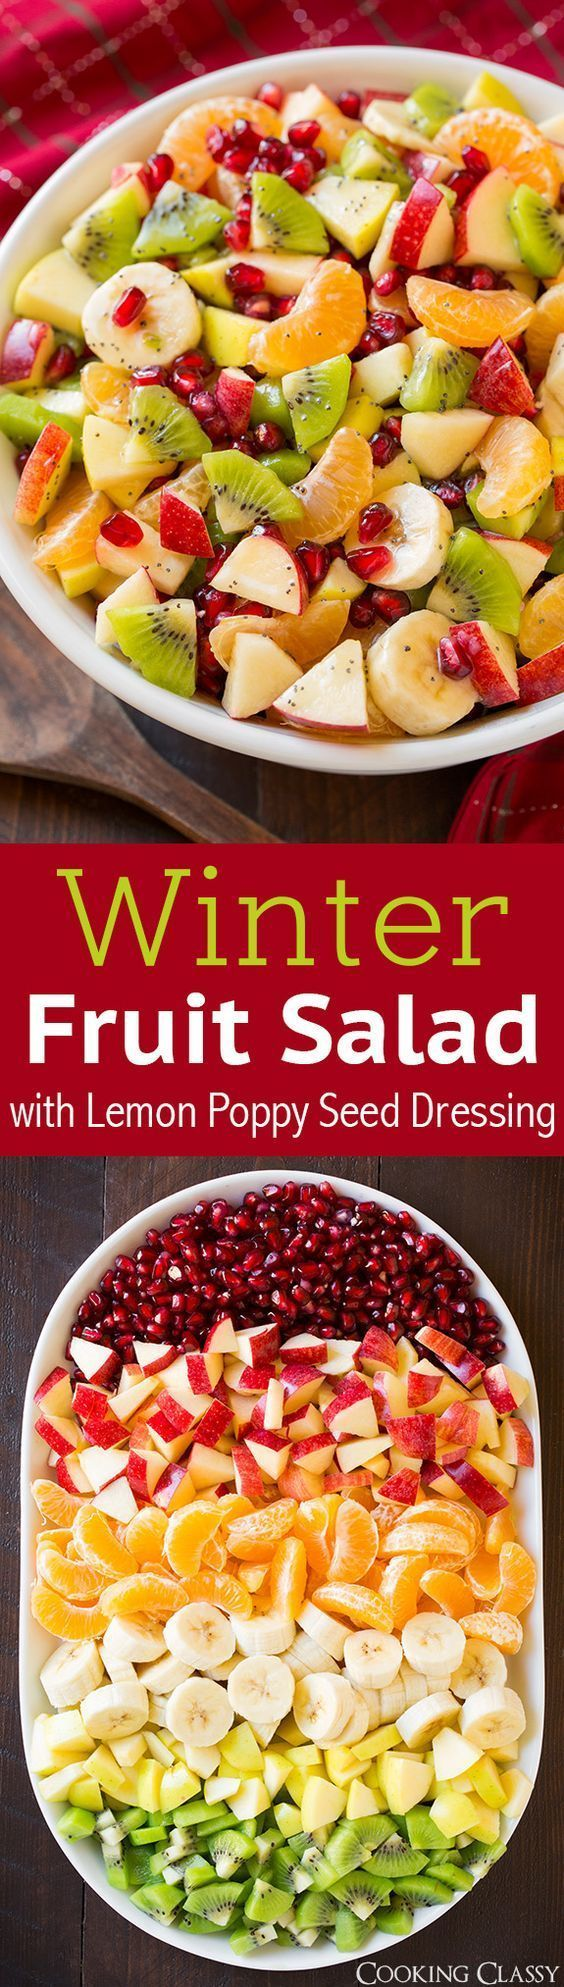 Winter Fruit Salad with Lemon Poppy Seed Dressing -Lots of salad recipes on Cooking Classy